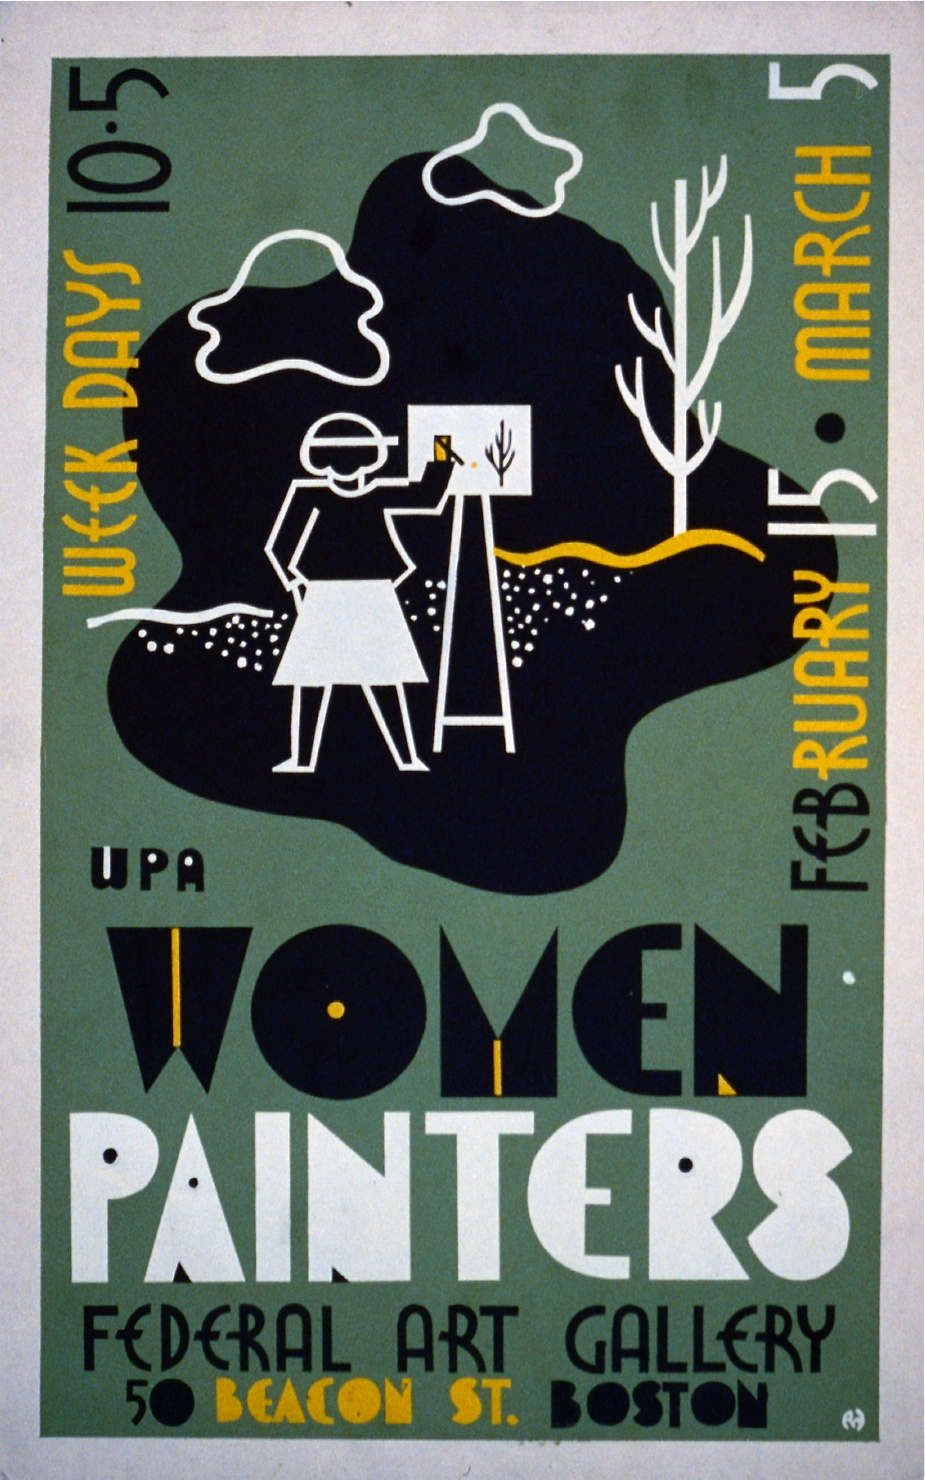 Poster for exhibition of WPA women painters at the Federal Art Gallery, 50 Beacon St., Boston, Mass., showing a woman painting outdoors. c. 1936/38